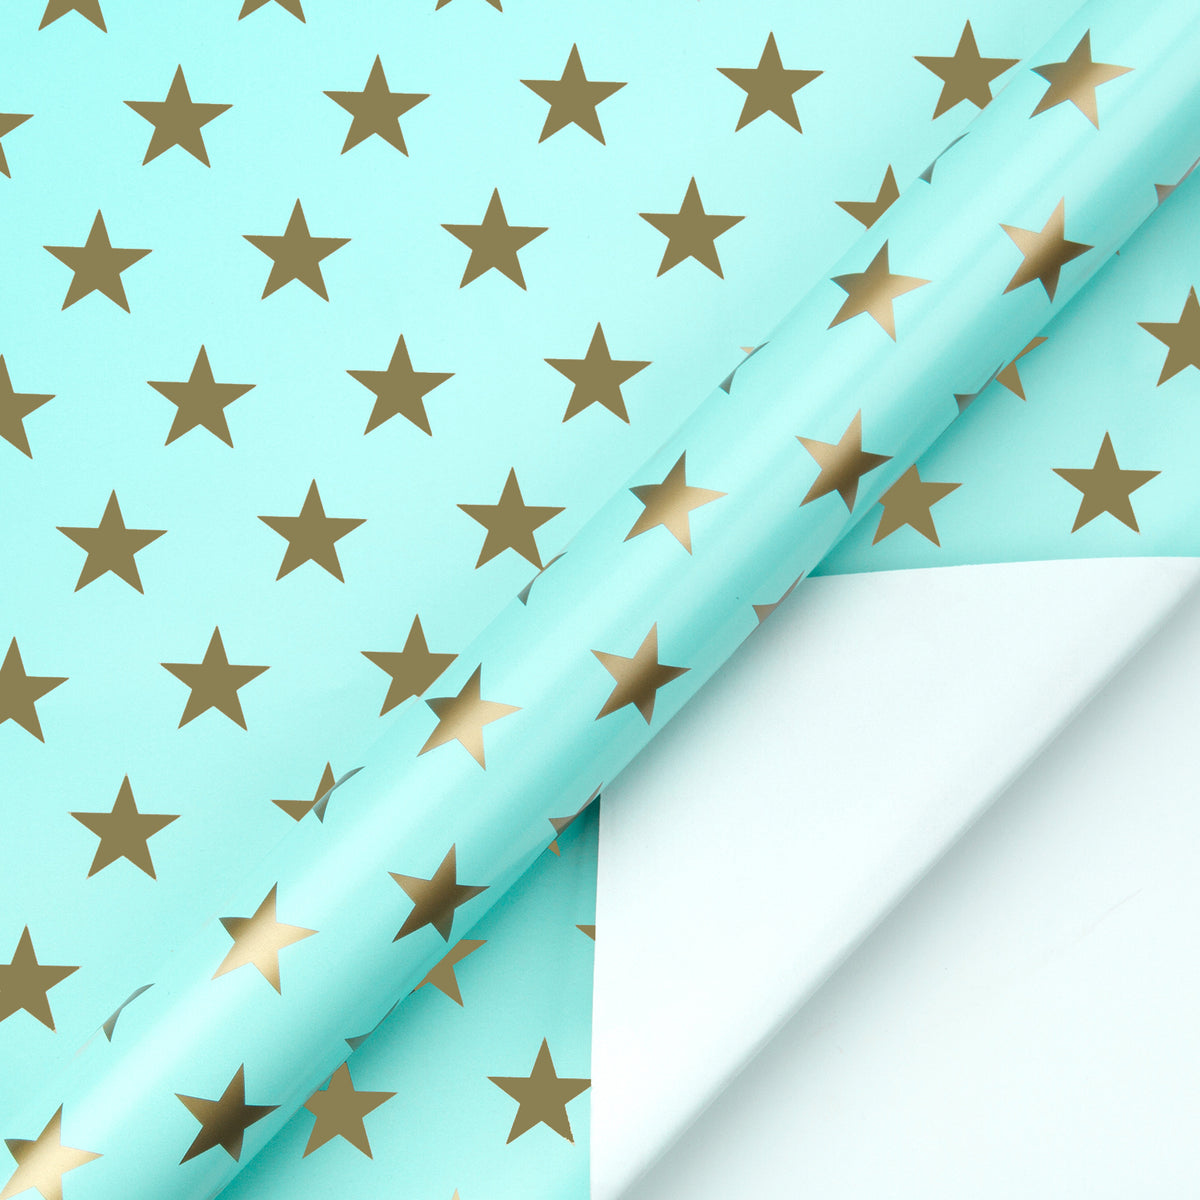 Wrapaholic-Mint-Color- with-Gold-Print Star-Design-Gift -Wrapping-Paper-Roll-2